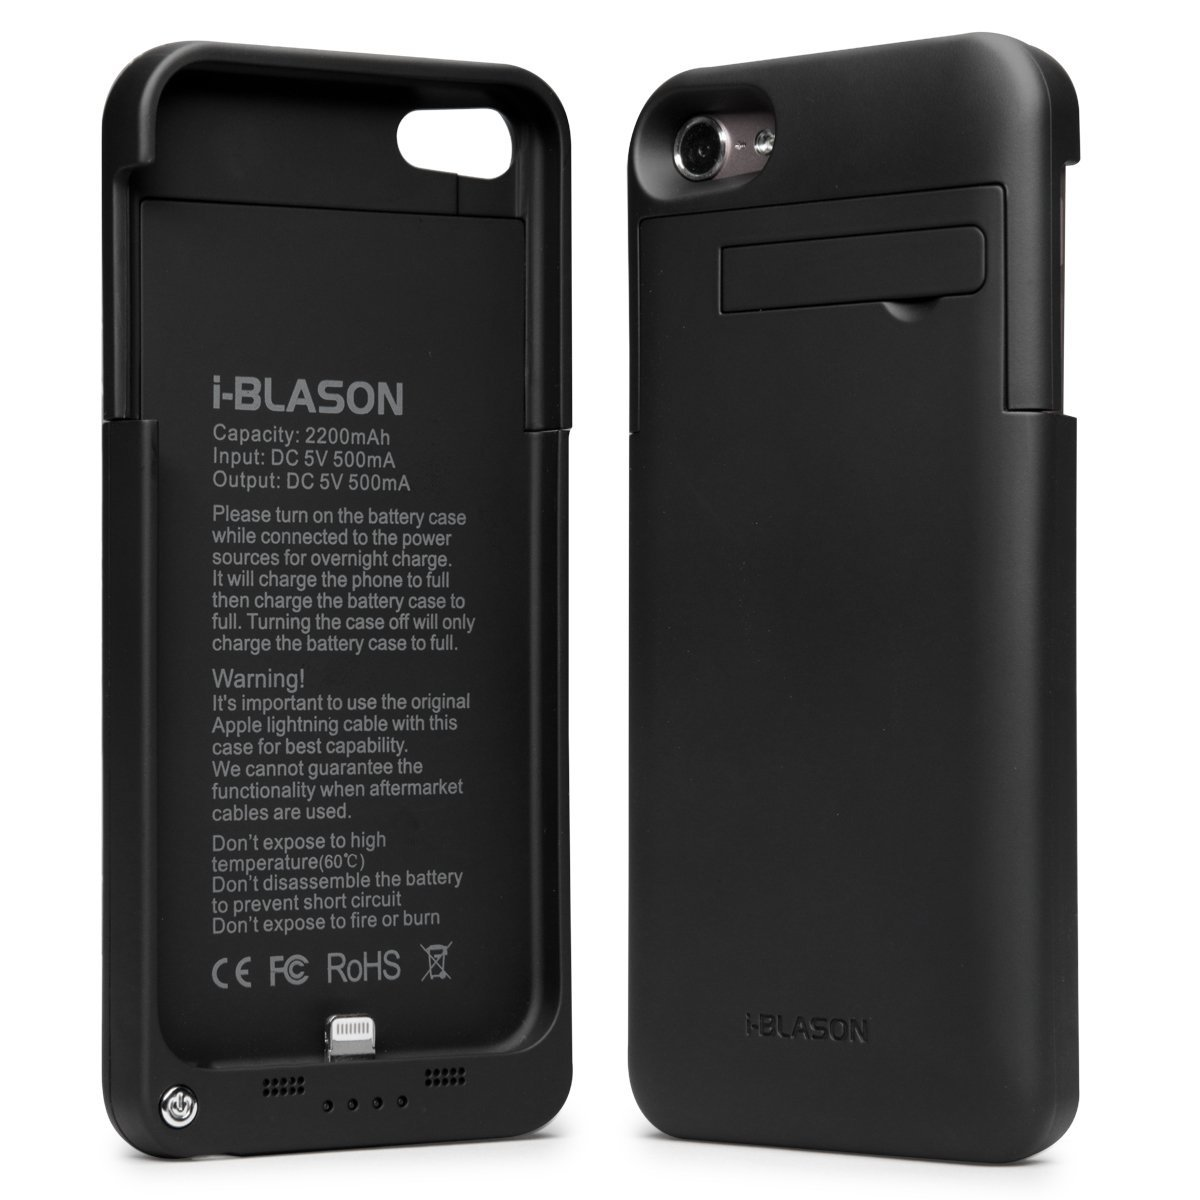 online store 04fcc 0ddce Buy i-Blason Power Glider iPod Touch 5th 6th Generation iTouch 5 6 ...